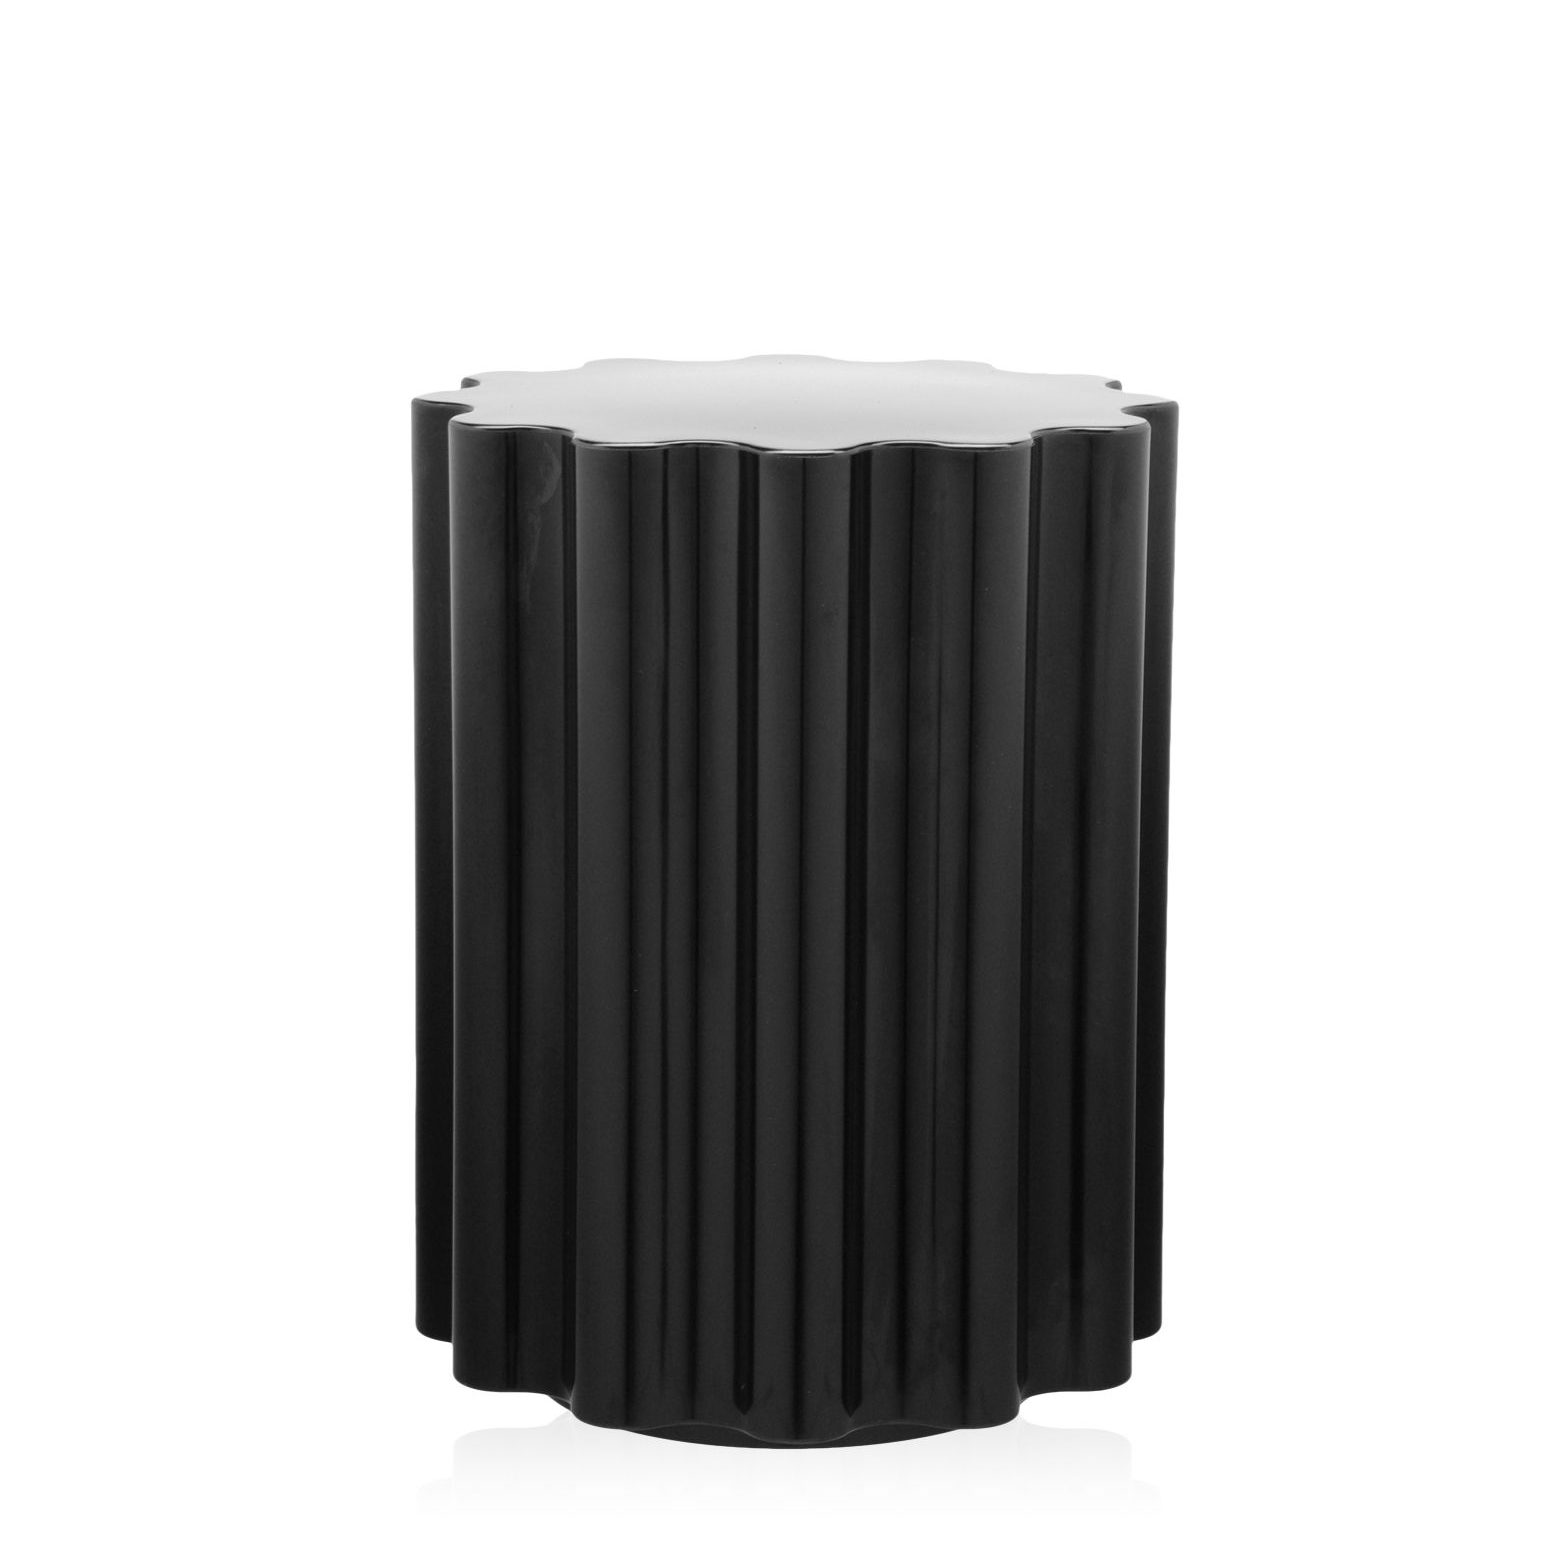 Kartell Colonna Stool or Side Table